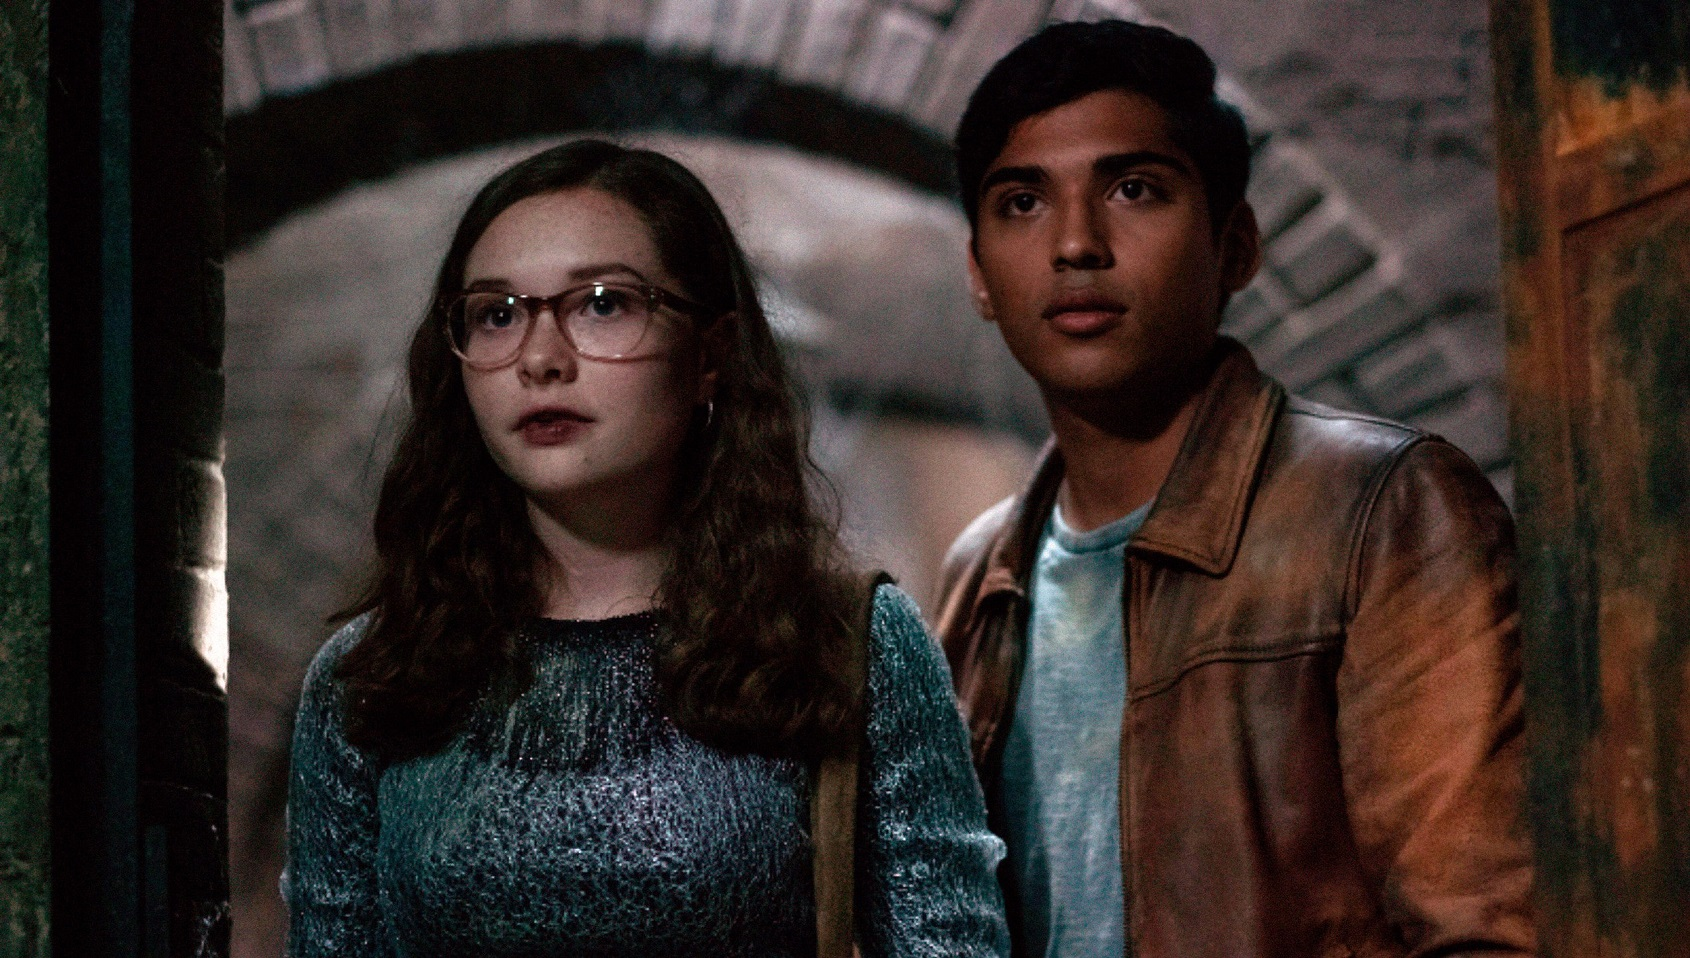 Stella (Zoe Colletti) and Ramon (Michael Garza) in Scary Stories to Tell in the Dark